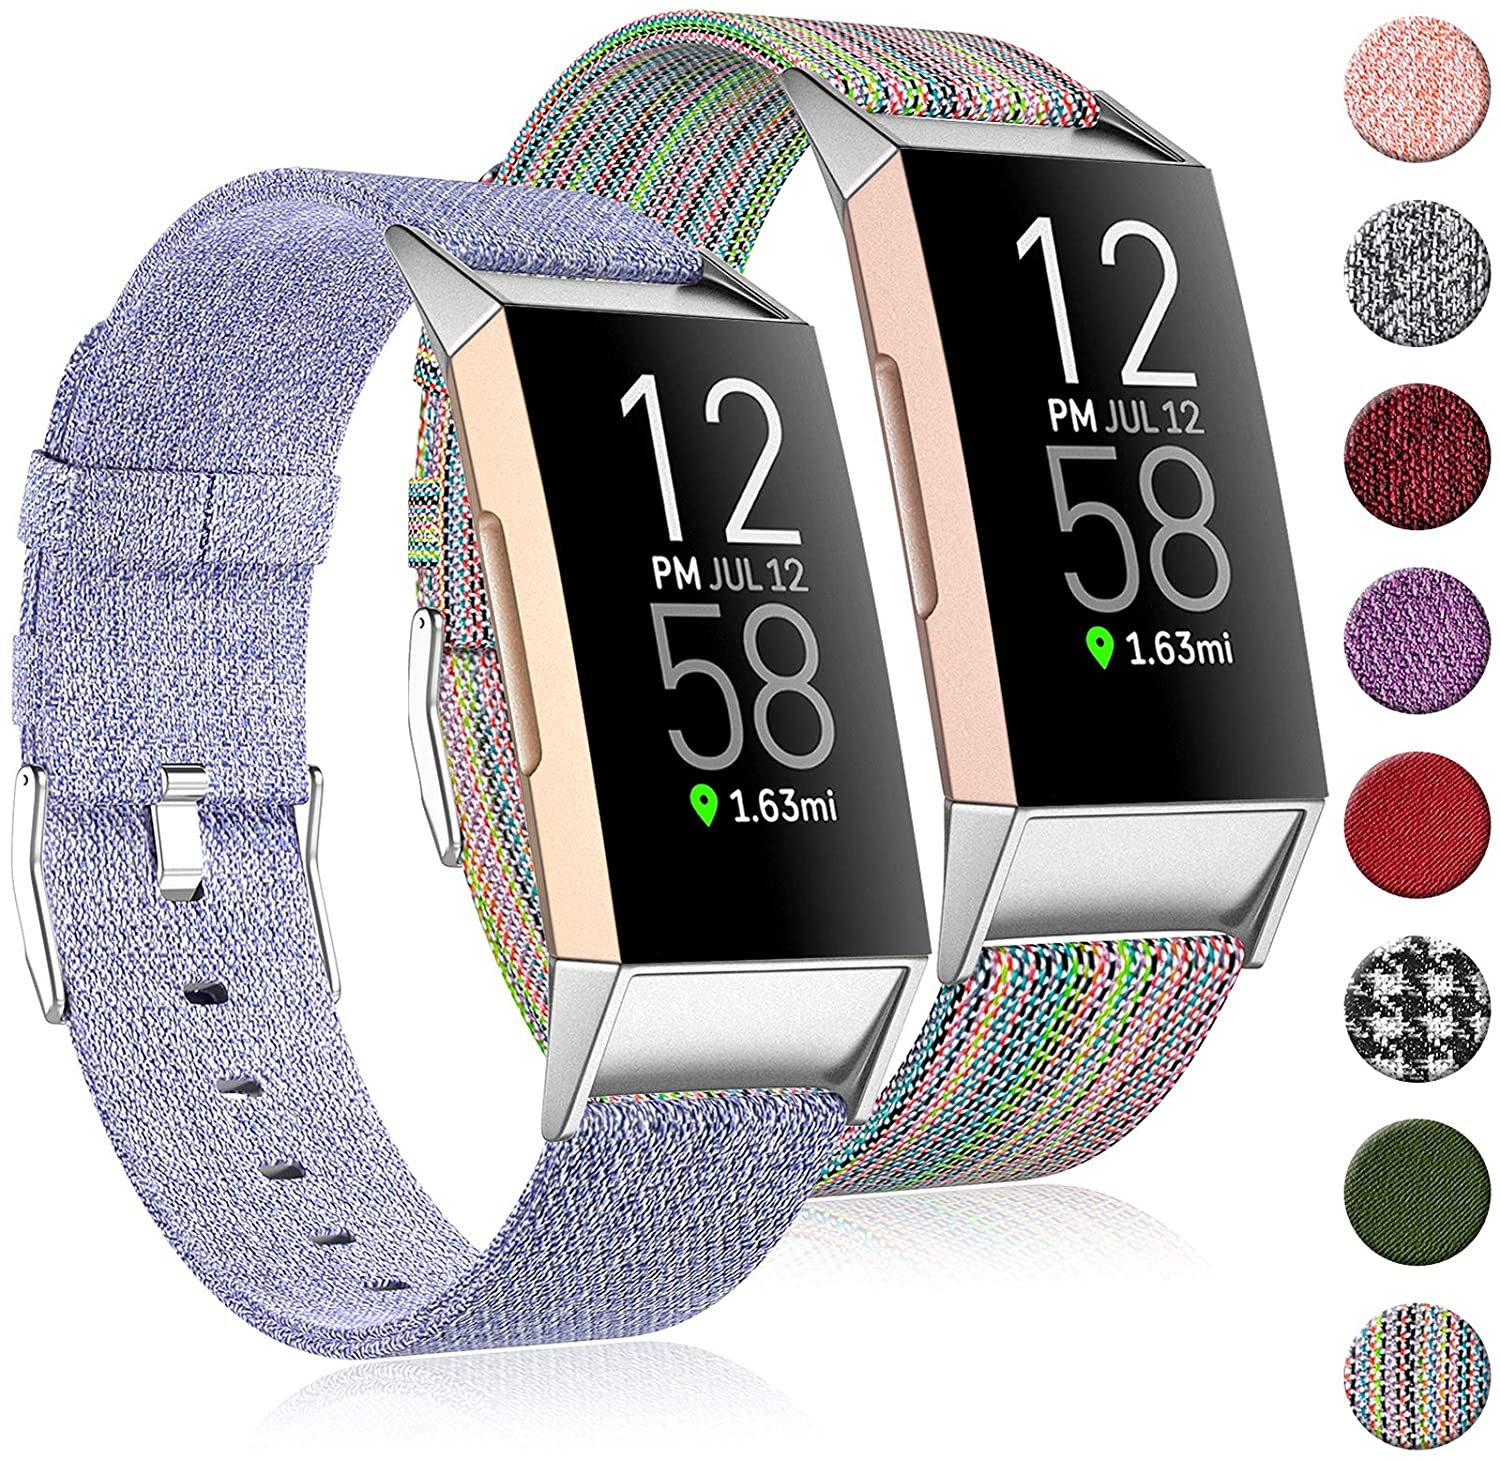 (2 Pack) Witzon Fabric Woven Bands Compatible with Fitbit Charge 4 / Charge 3 / Charge 3 SE, Breathable Canvas Replacement Straps Wristbands Accessories for Women Men, Small